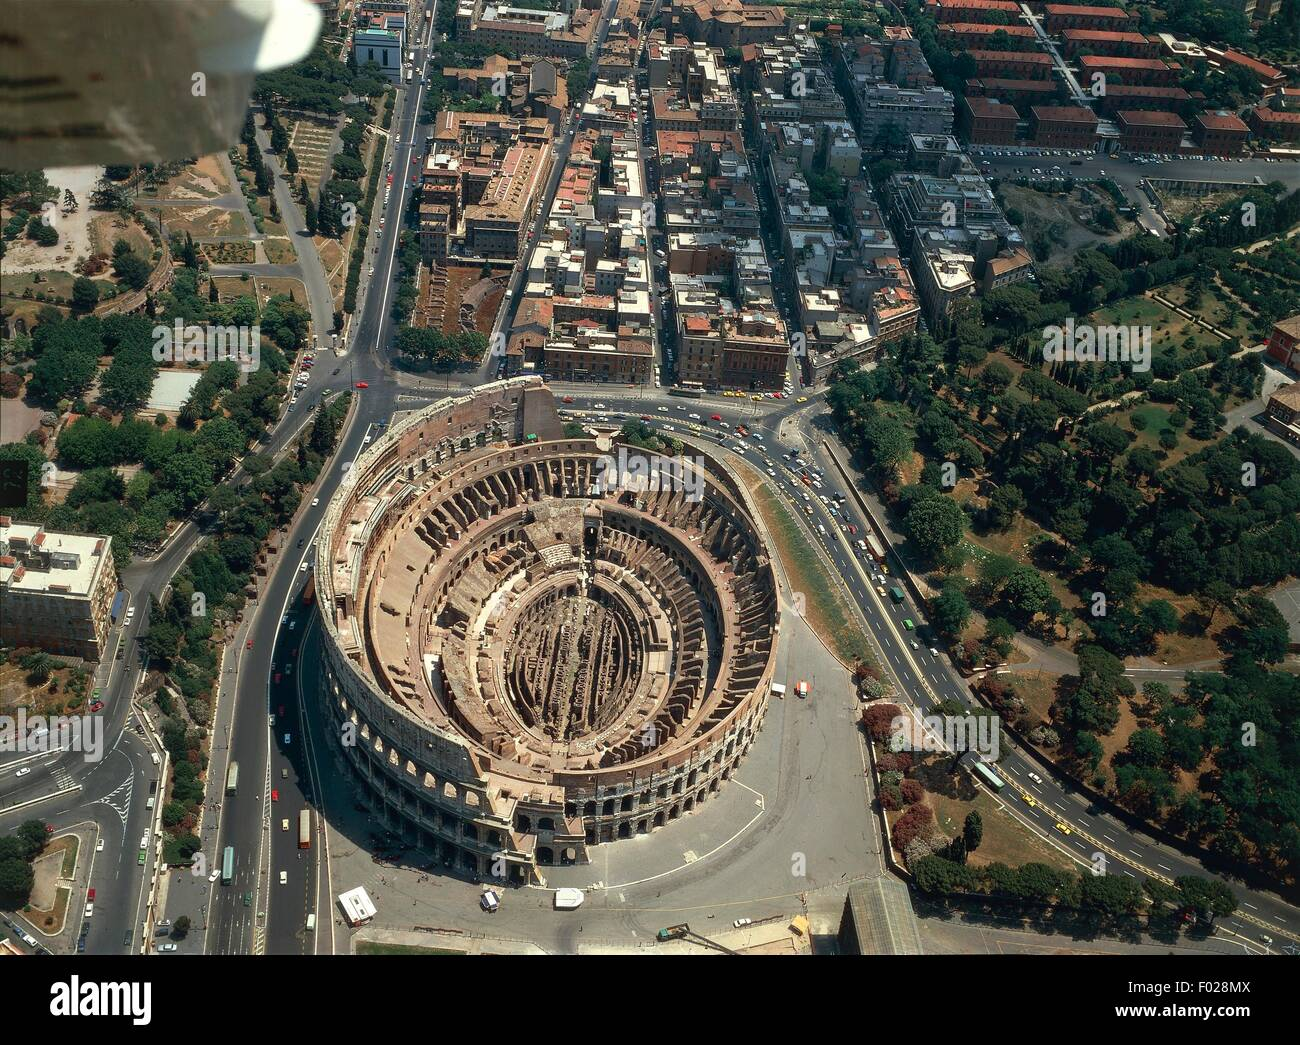 Aerial view of Flavian amphitheater Colosseum in Rome (UNESCO World Heritage List, 1980, 1990) - Lazio Region, Italy - Stock Image